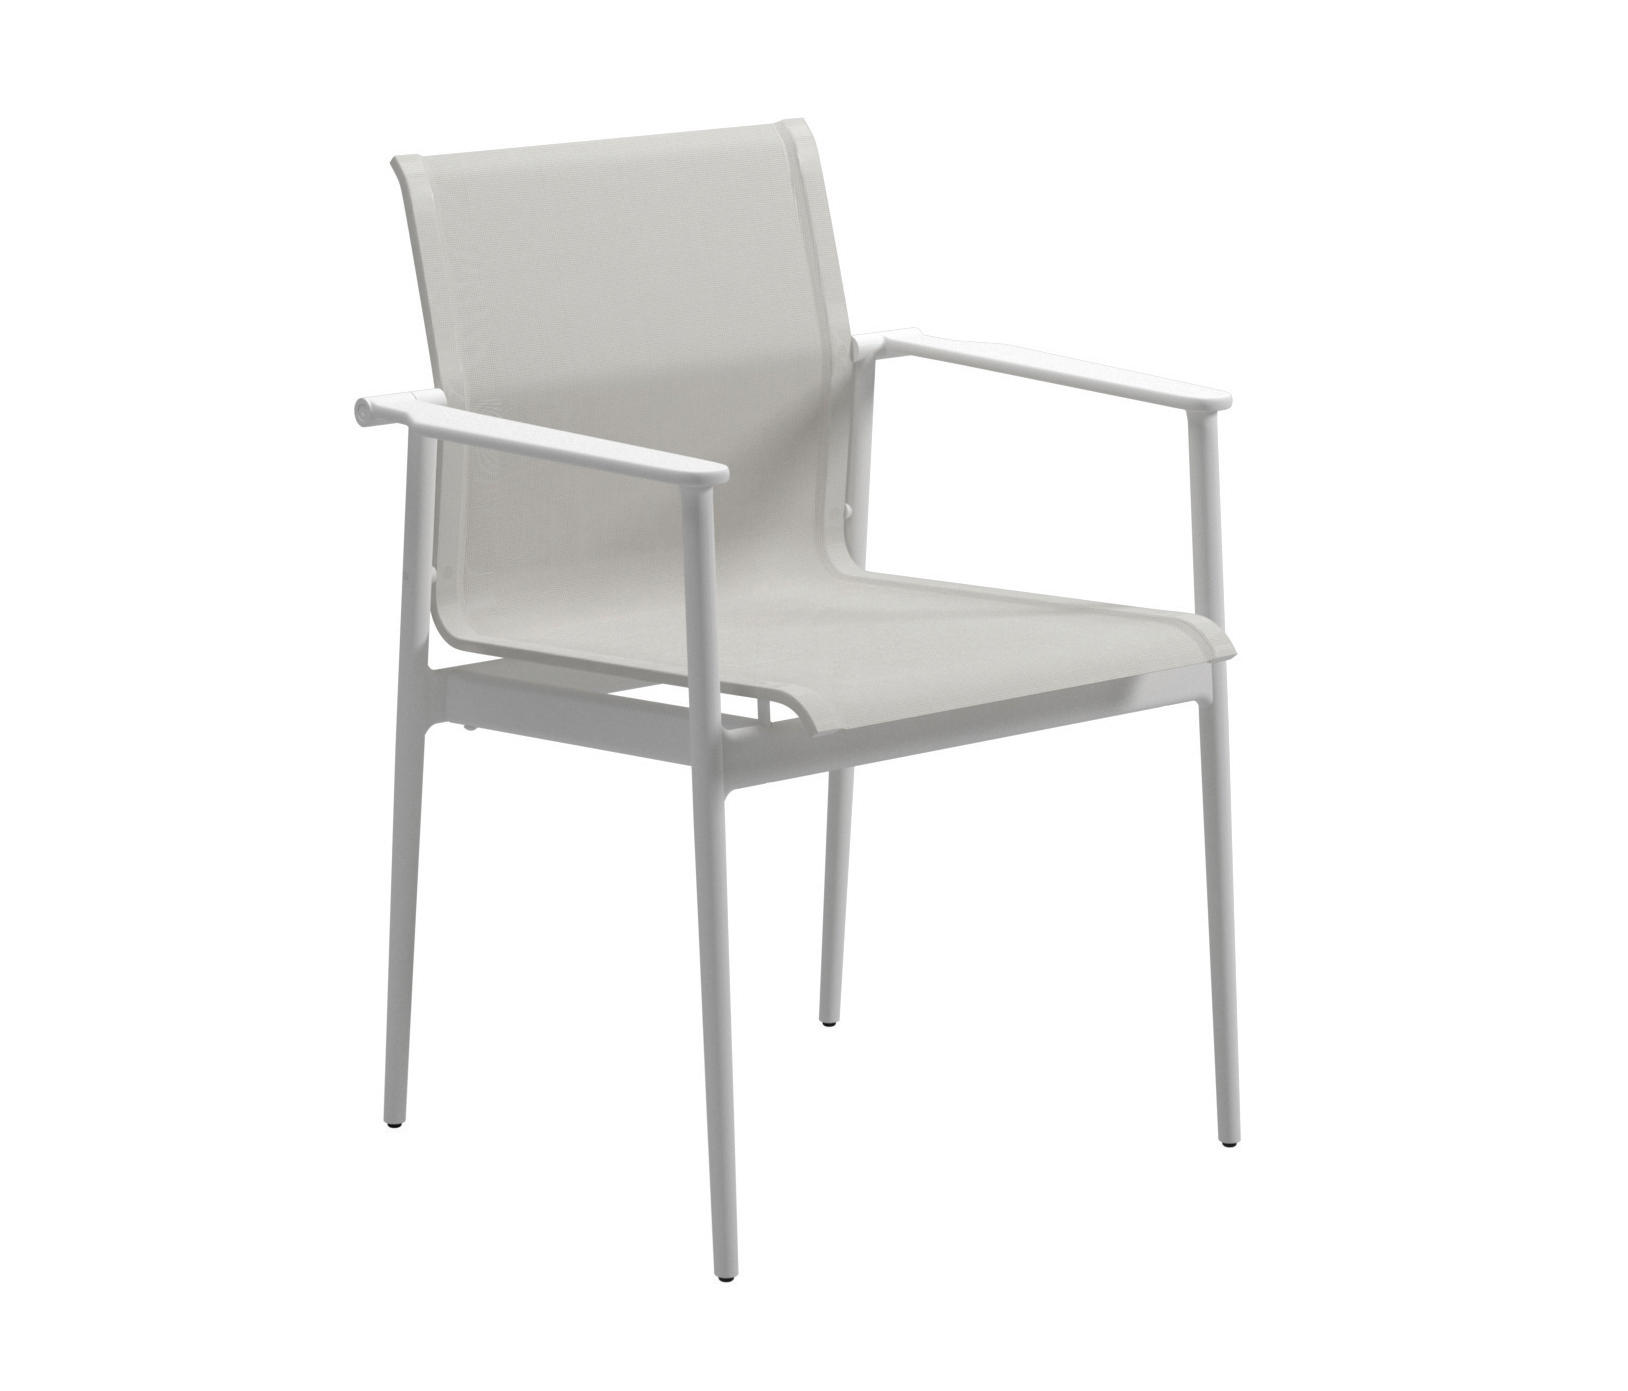 Prime 180 Stacking Chair With Arms Architonic Squirreltailoven Fun Painted Chair Ideas Images Squirreltailovenorg